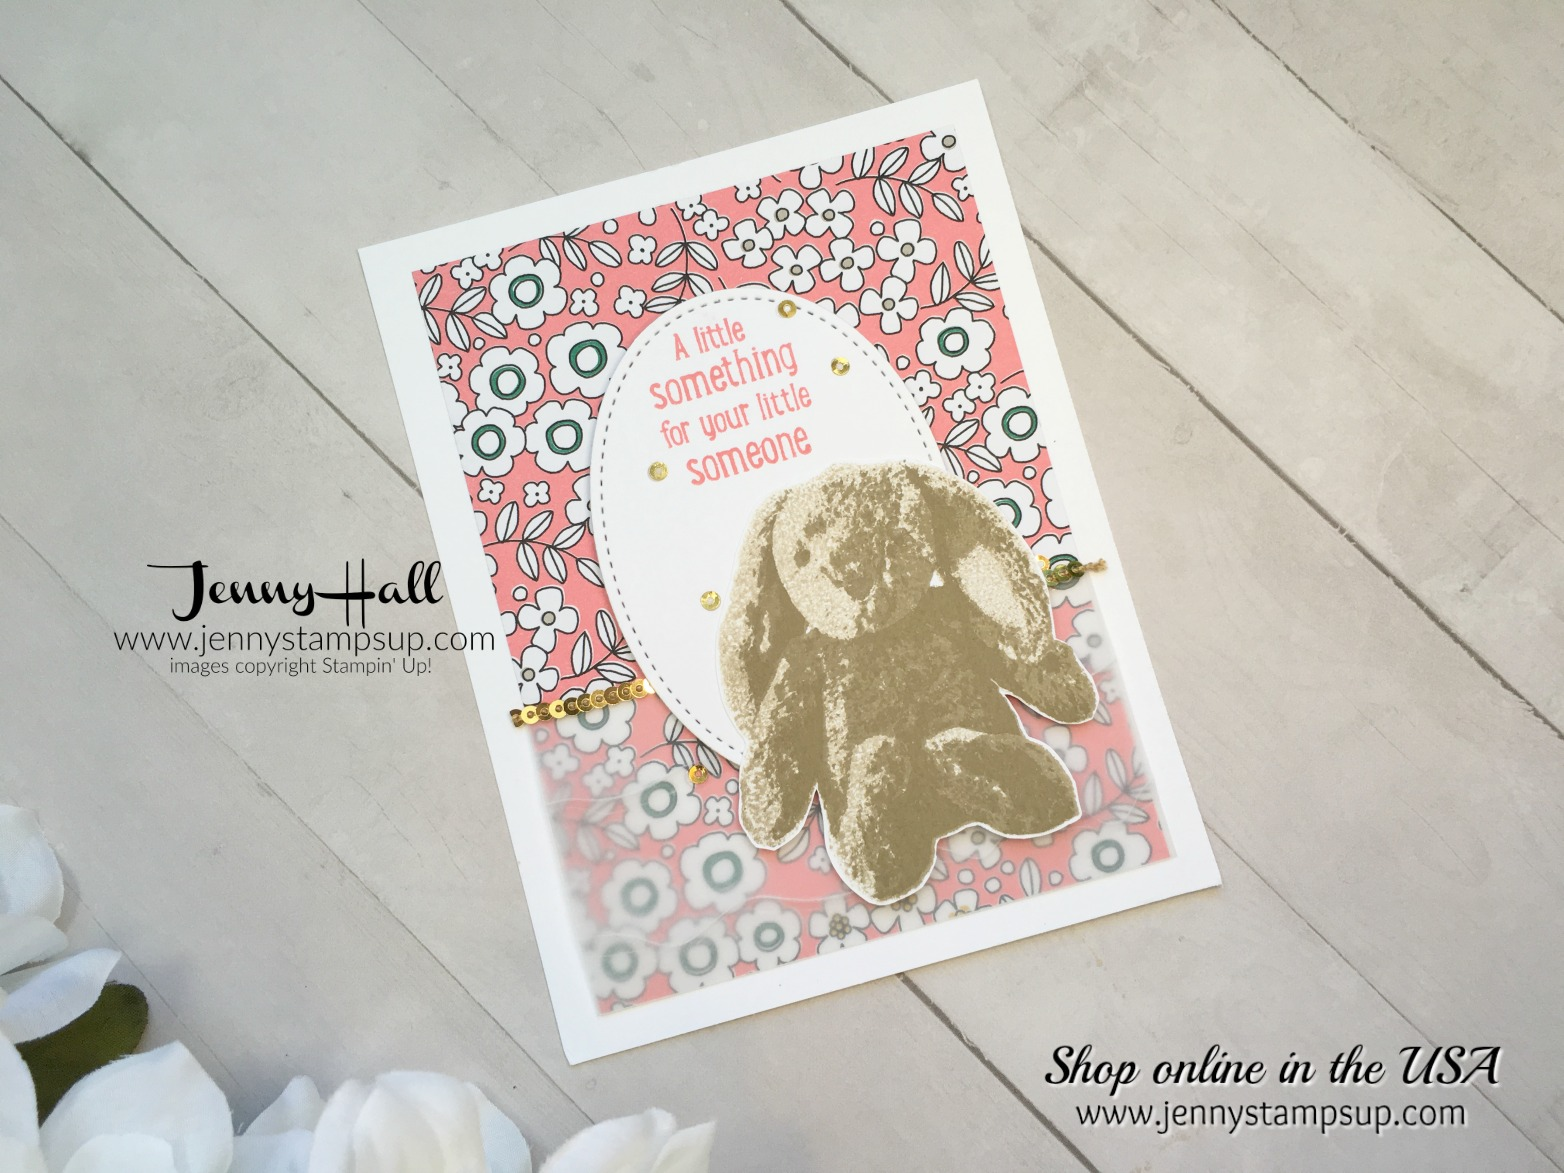 Sweet Little Something baby card made for 2017 OnStage Display in SLC by Jenny Hall at www.jennyhalldesign.com for cardmaking, video tutorials, scrapbooking and more!